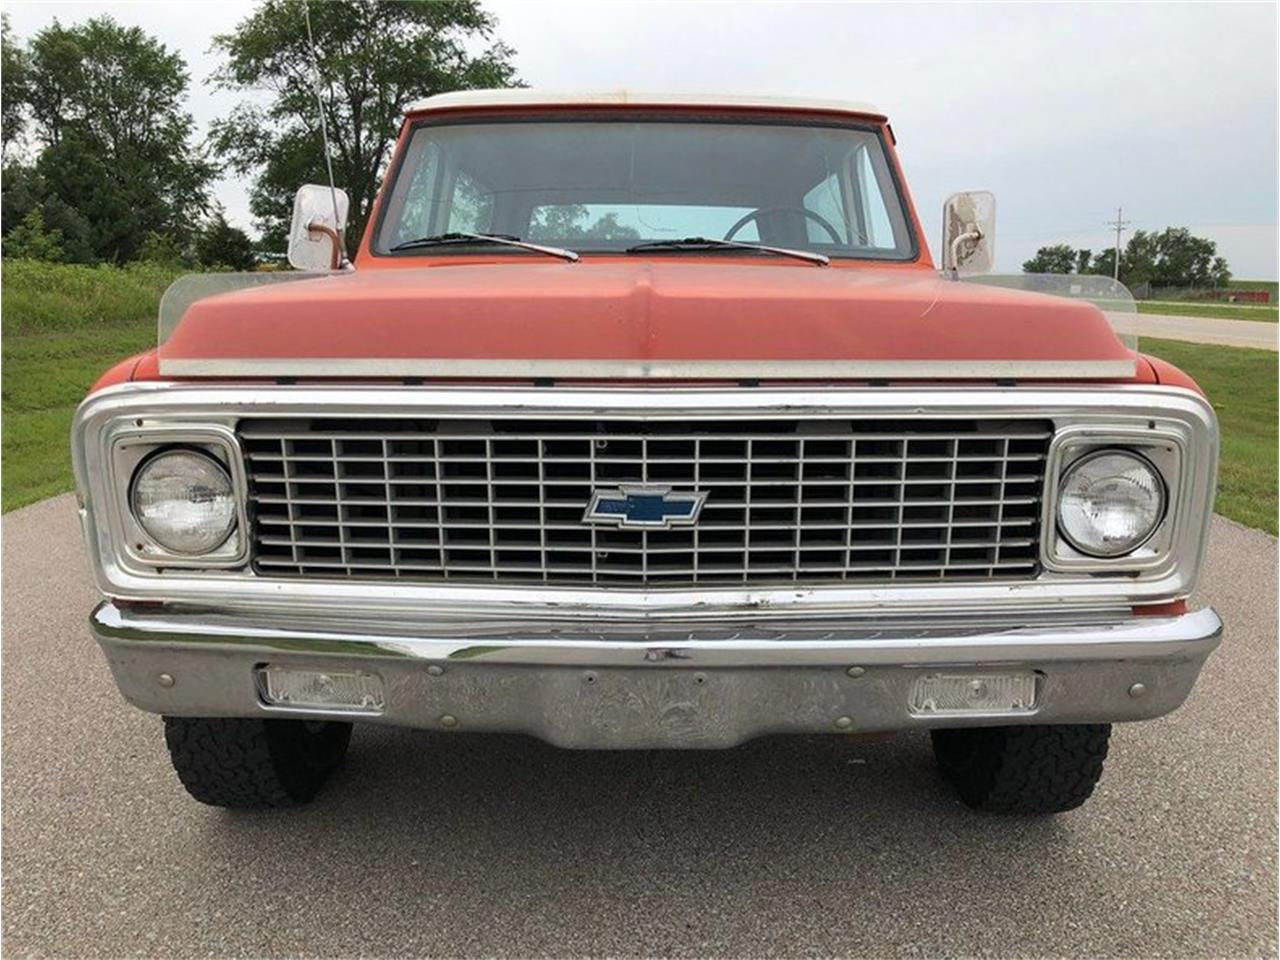 1972 Chevrolet Blazer for sale in Lincoln, NE – photo 6